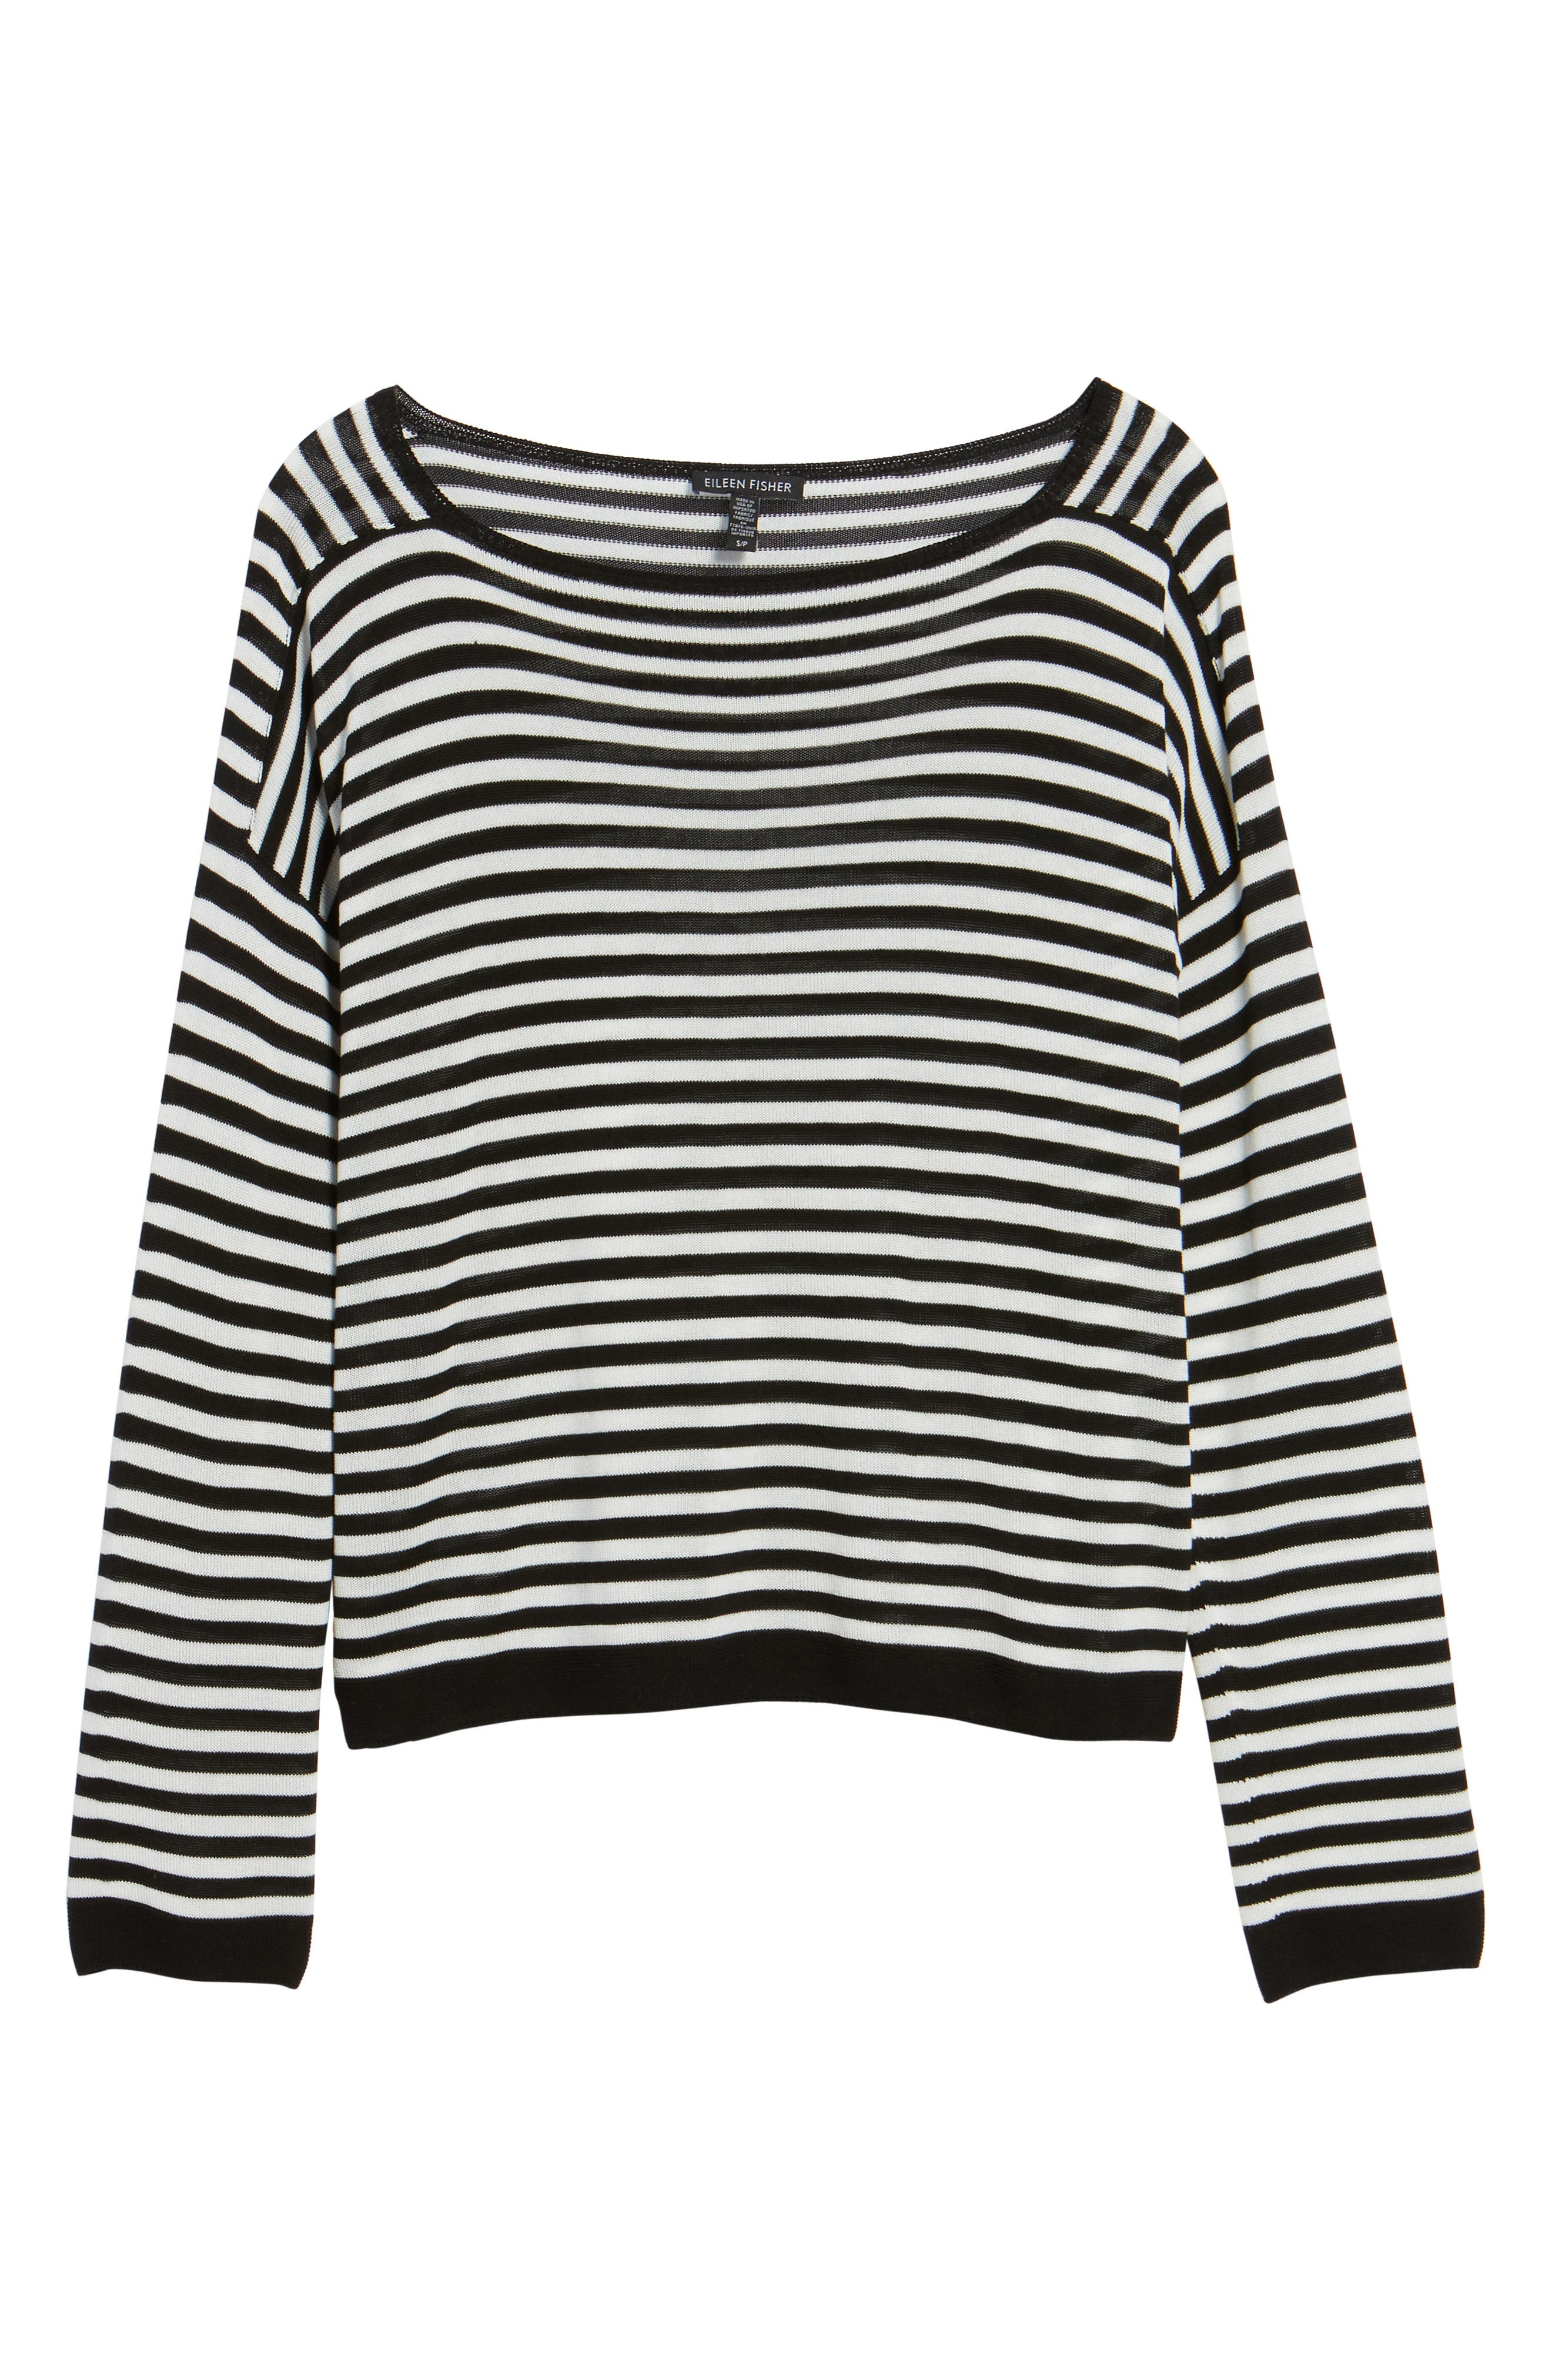 Stripe Tencel<sup>®</sup> Lyocell Knit Sweater,                             Alternate thumbnail 6, color,                             012